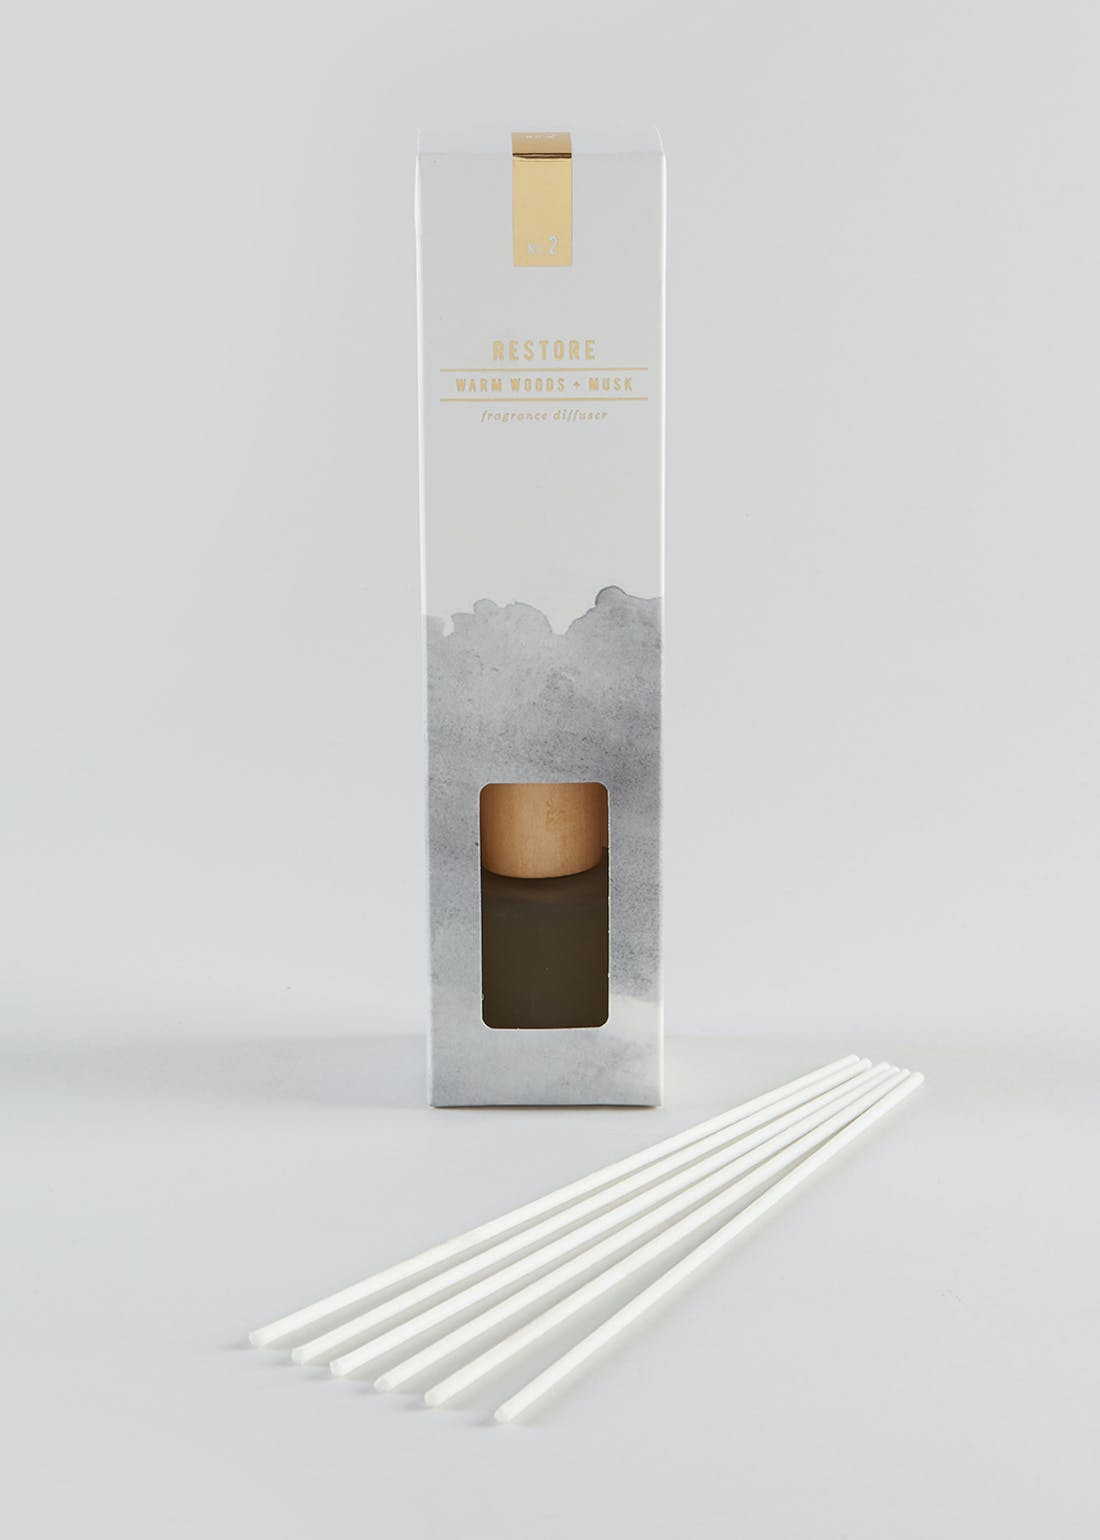 Warm Woods & Musk Fragranced Diffuser (50ml)